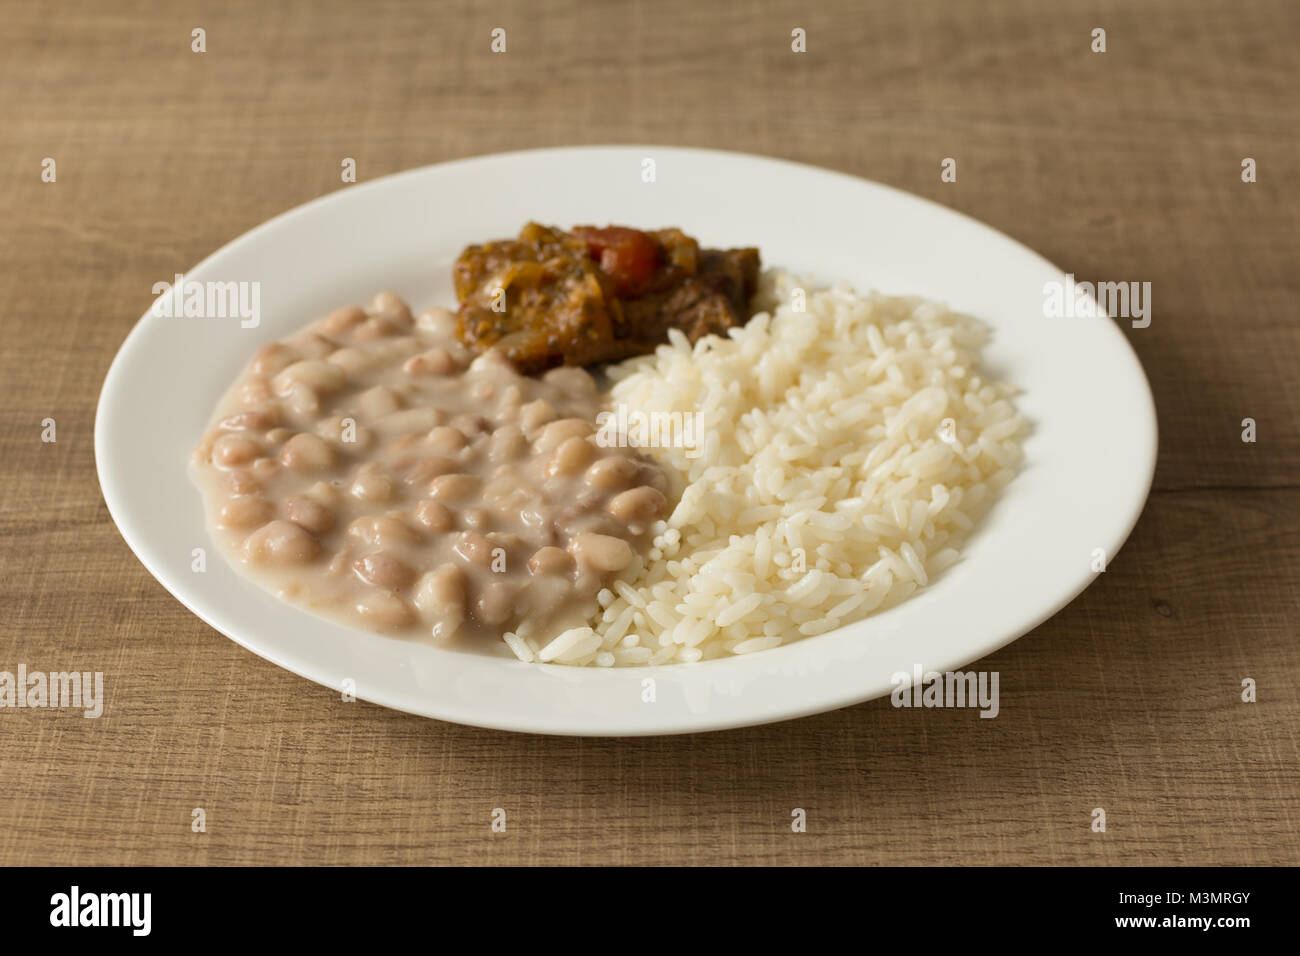 Meal With White Rice Pinto Beans And Meat With Sauce White Dish On Stock Photo Alamy